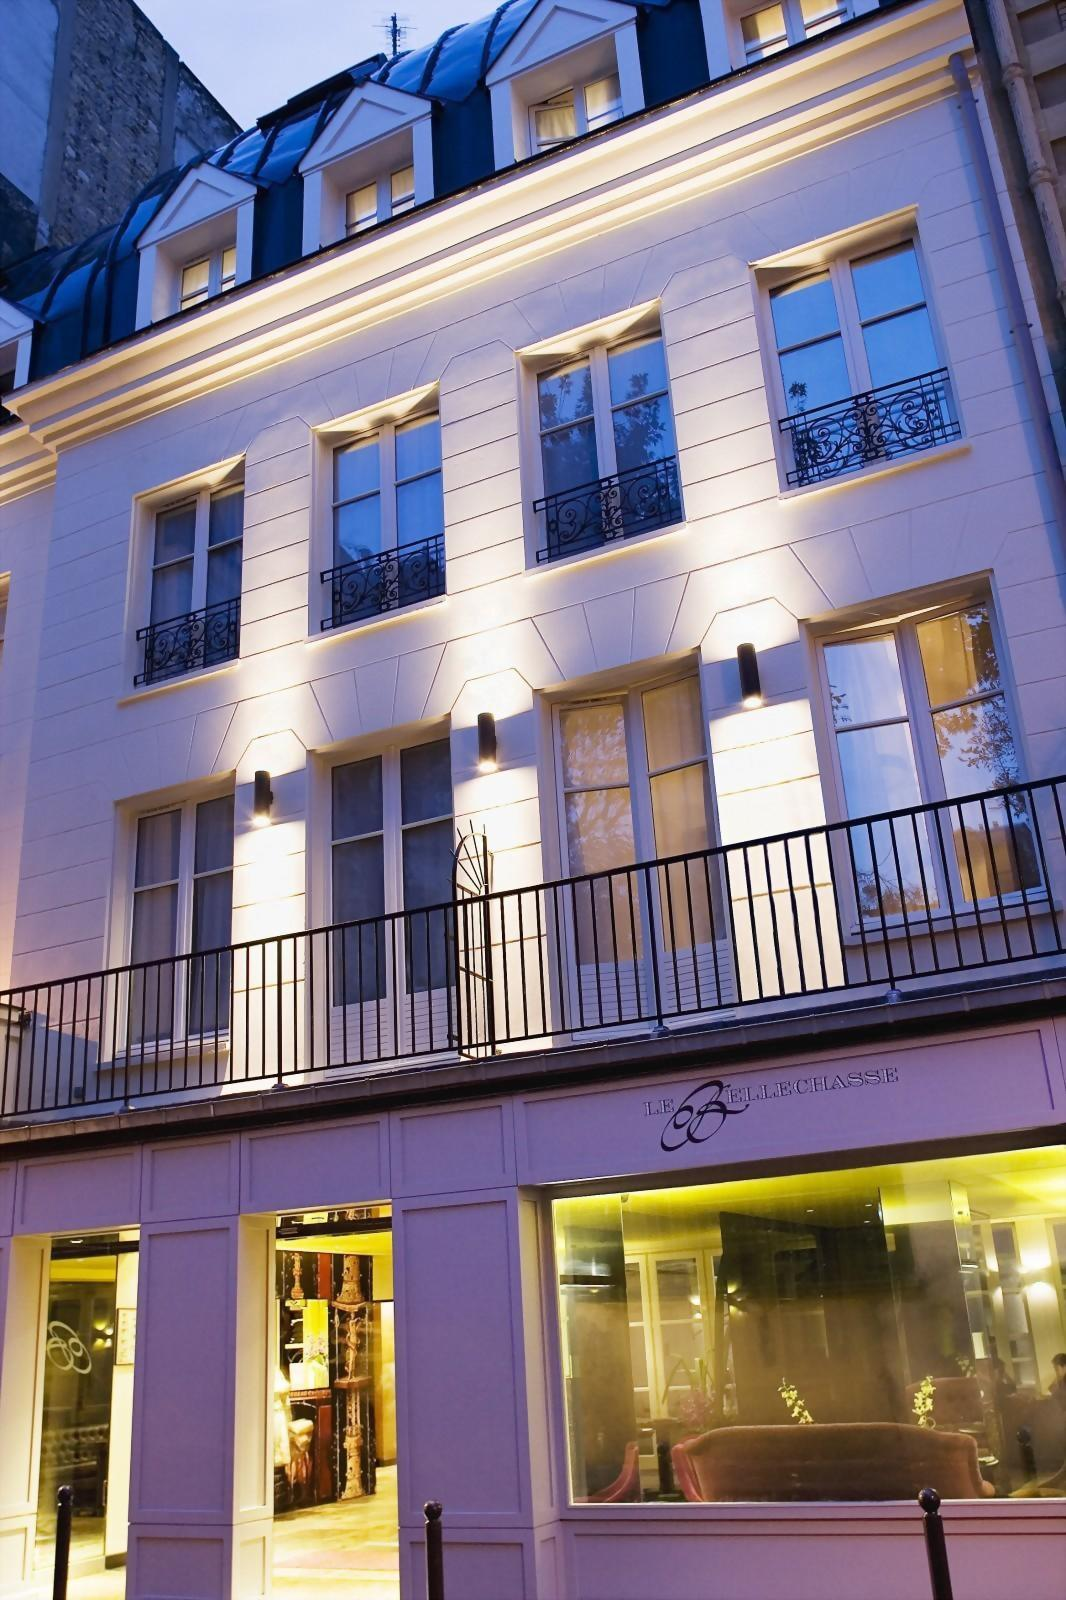 Hotel Le Bellechasse Saint-Germain